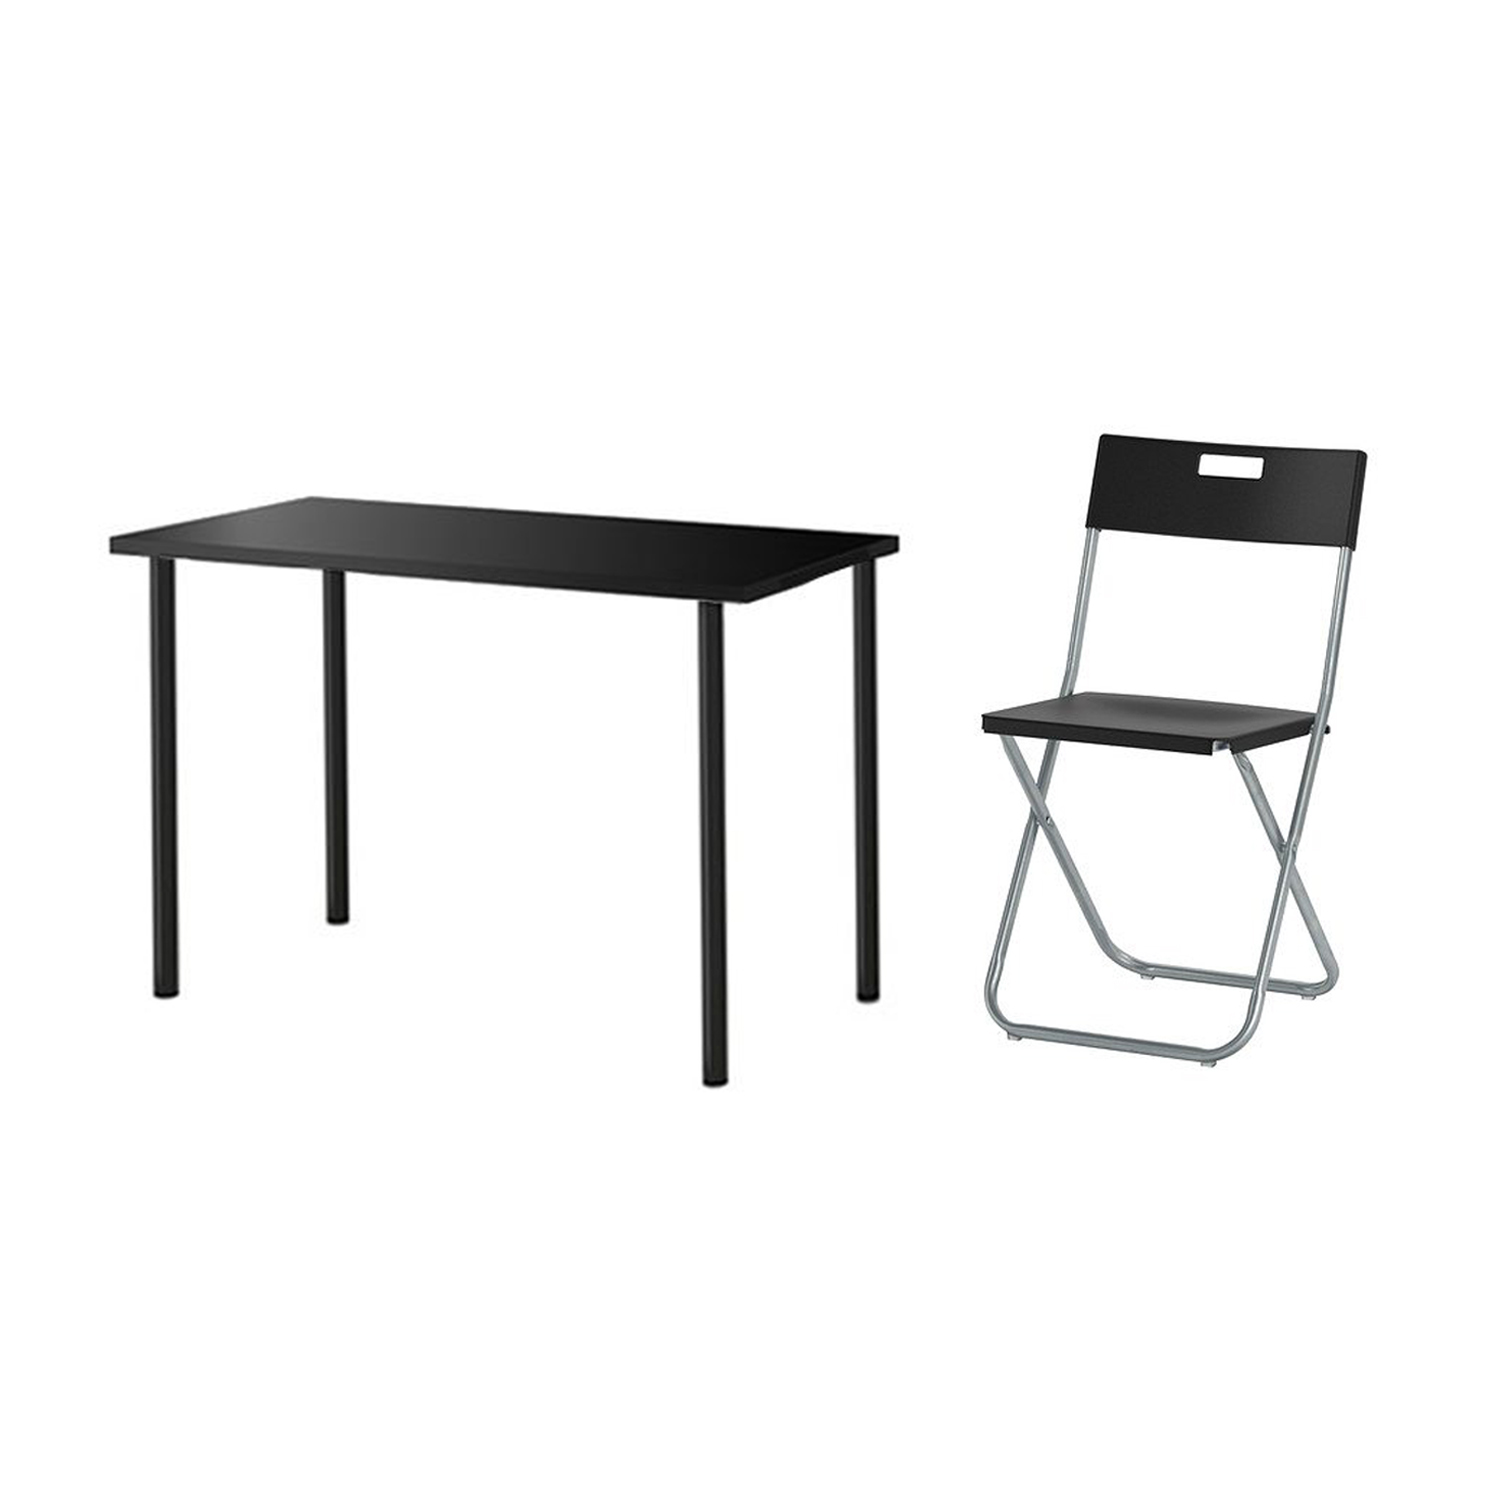 Linnmon Linnmon Adils Desk 100cm Black With Gunde Folding Chair Black